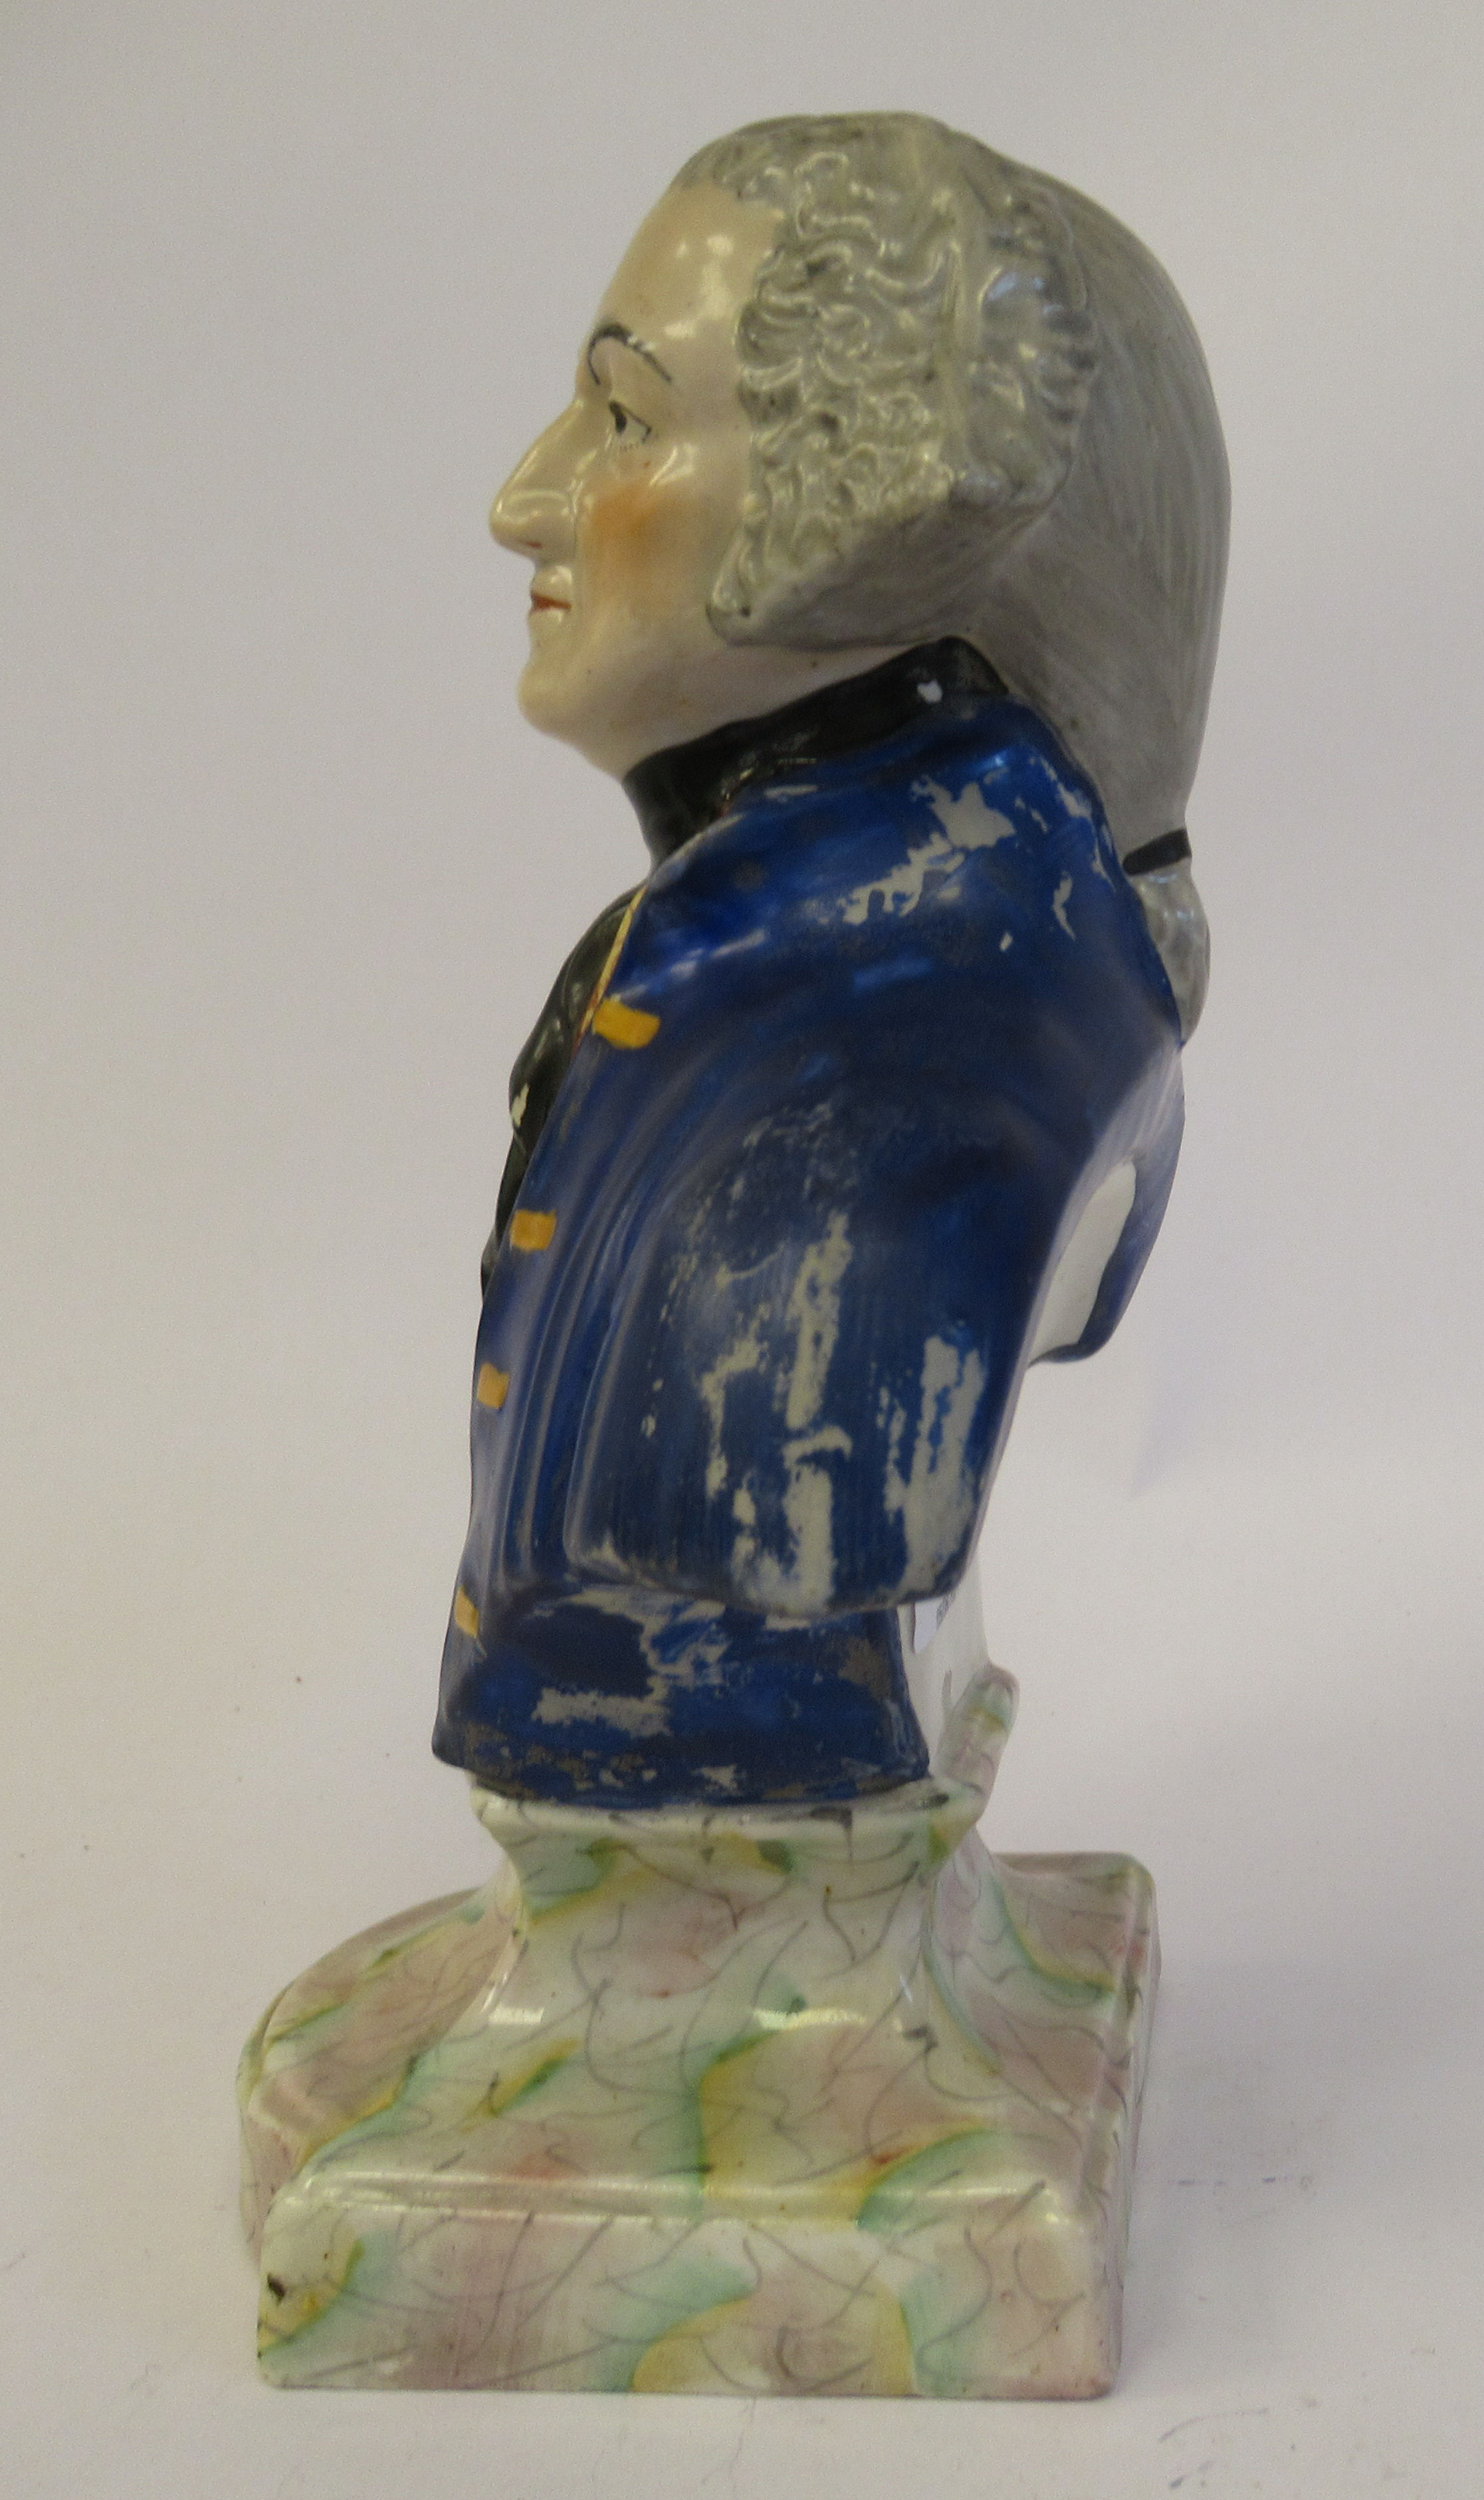 A 19thC Staffordshire pottery bust, featuring a bewigged gentleman, wearing a coat and cravat, on an - Image 2 of 8